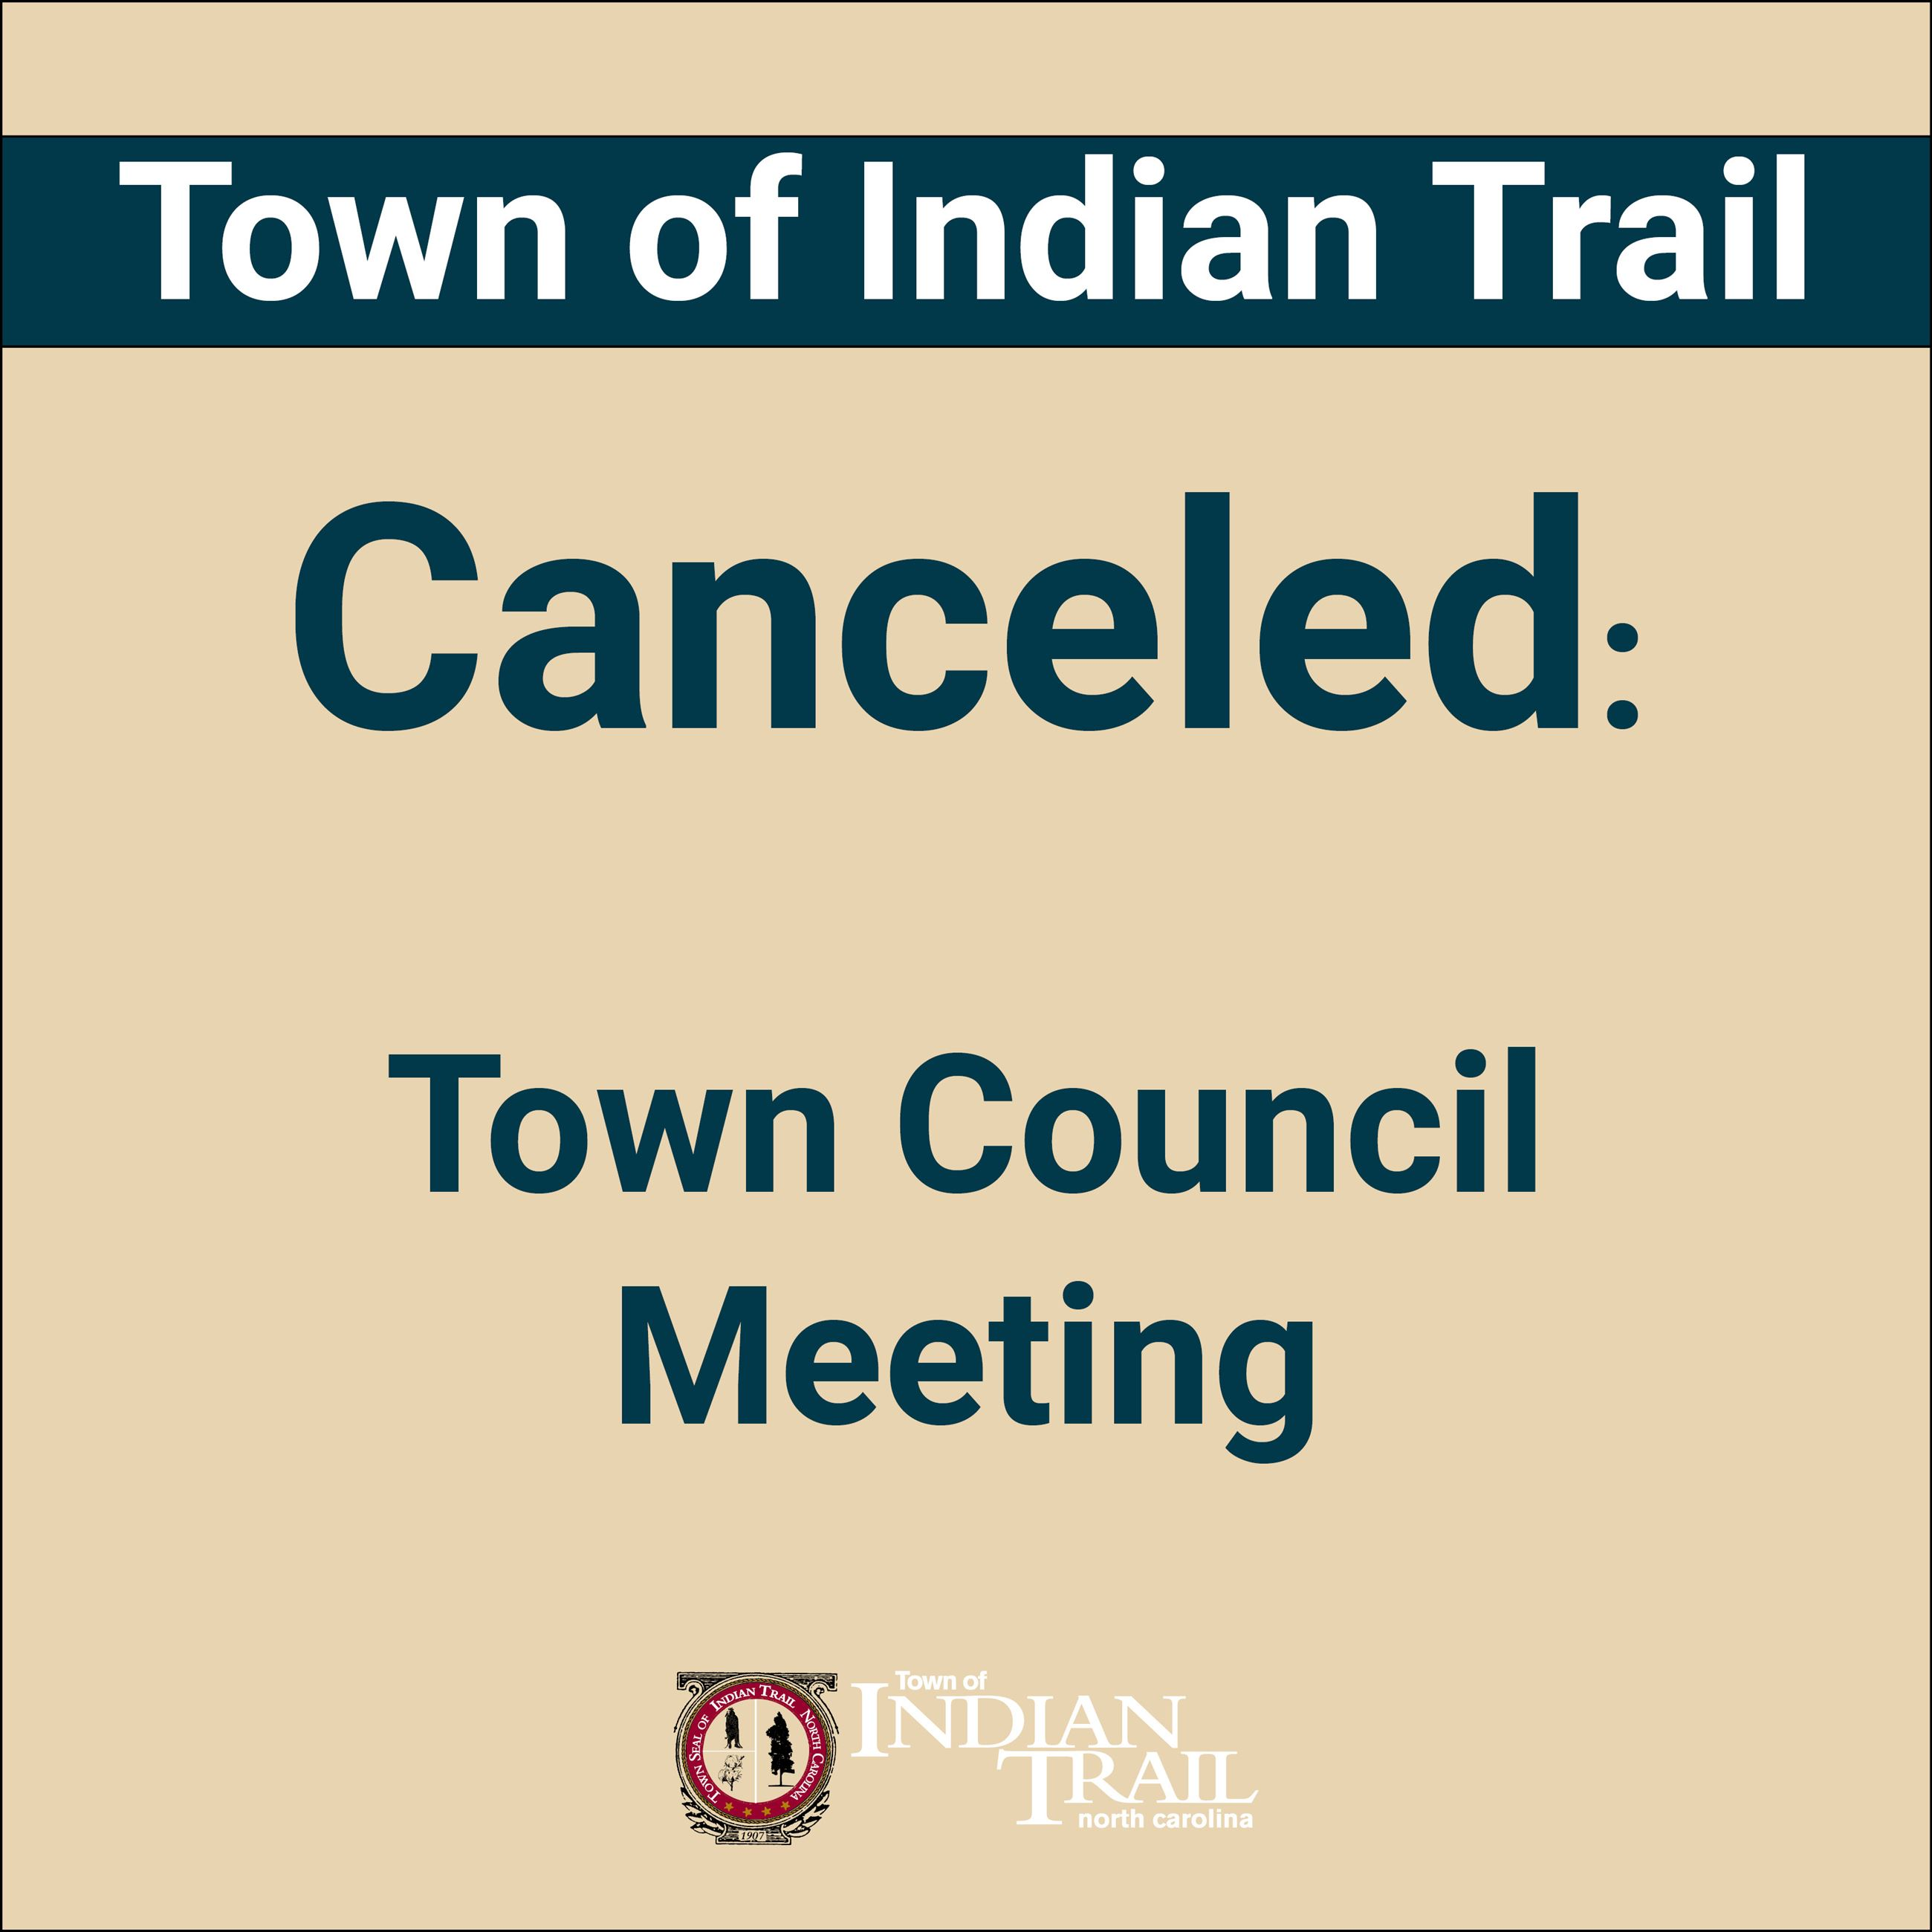 Town Council Meeting Canceled